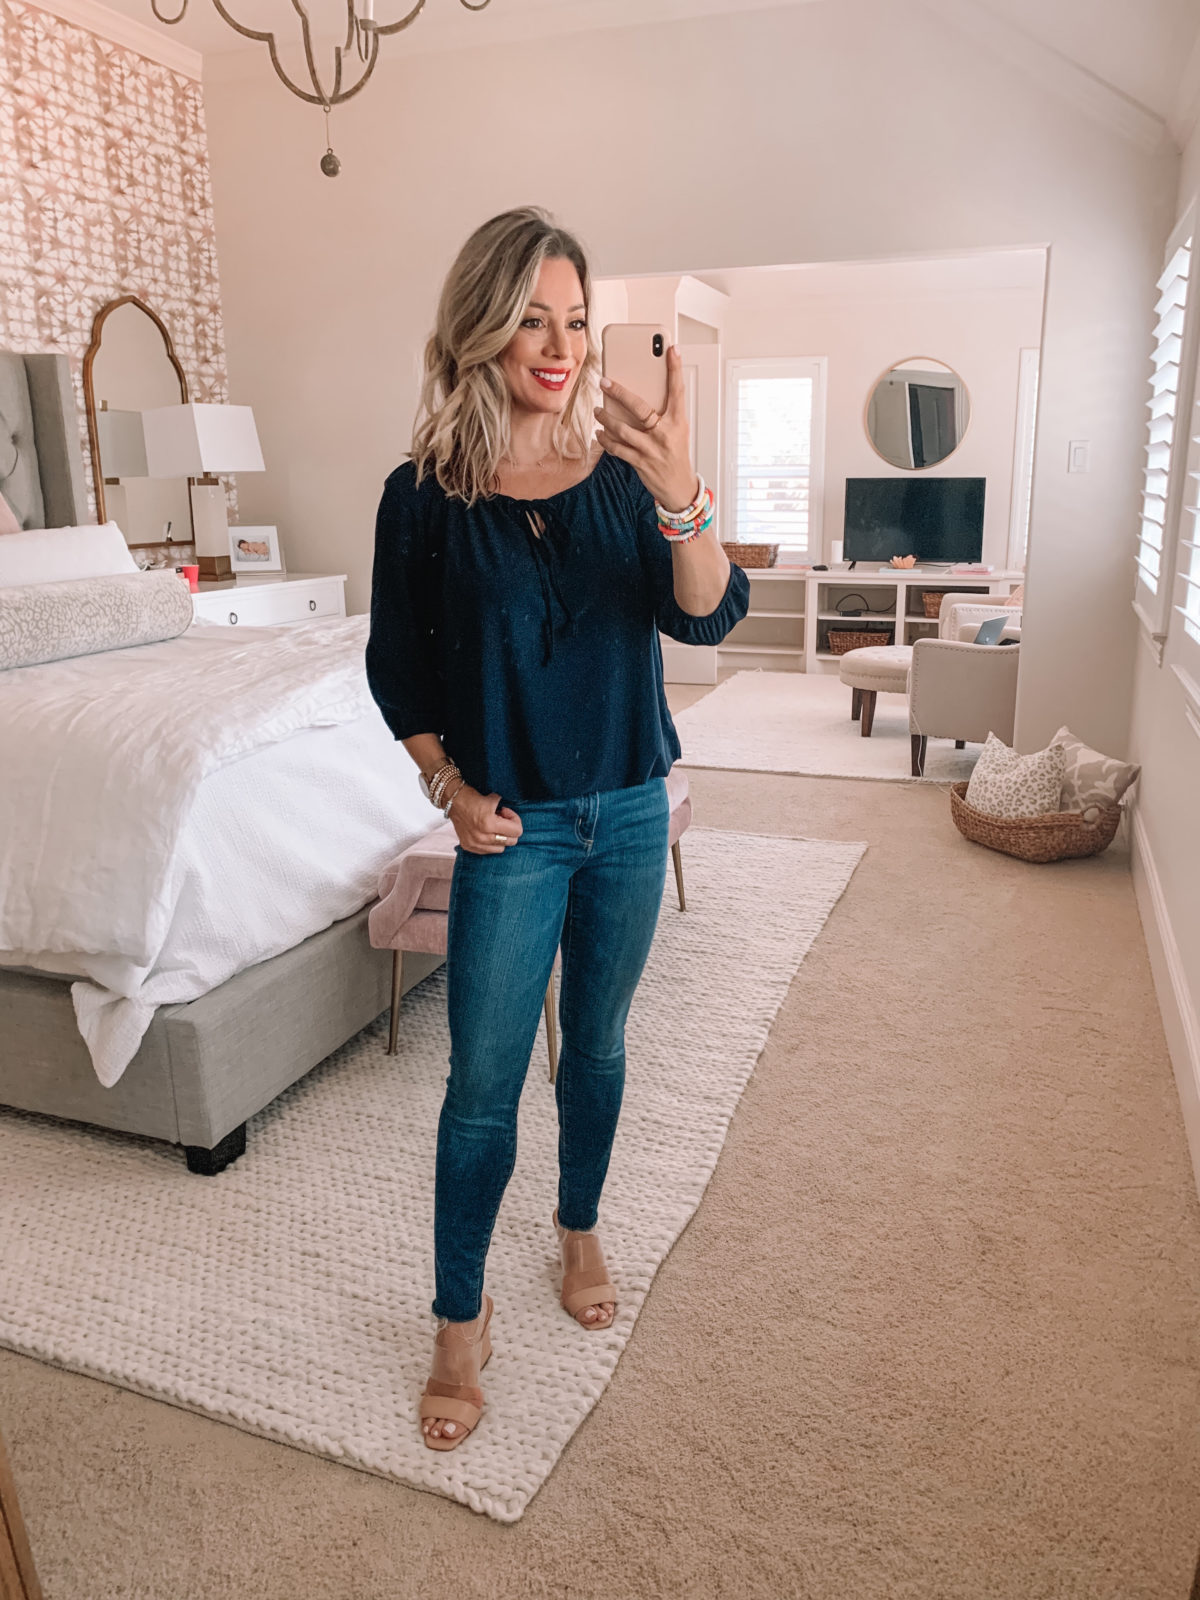 Amazon Fashion Finds, Peasant Top, Skinny Jeans, Sandals